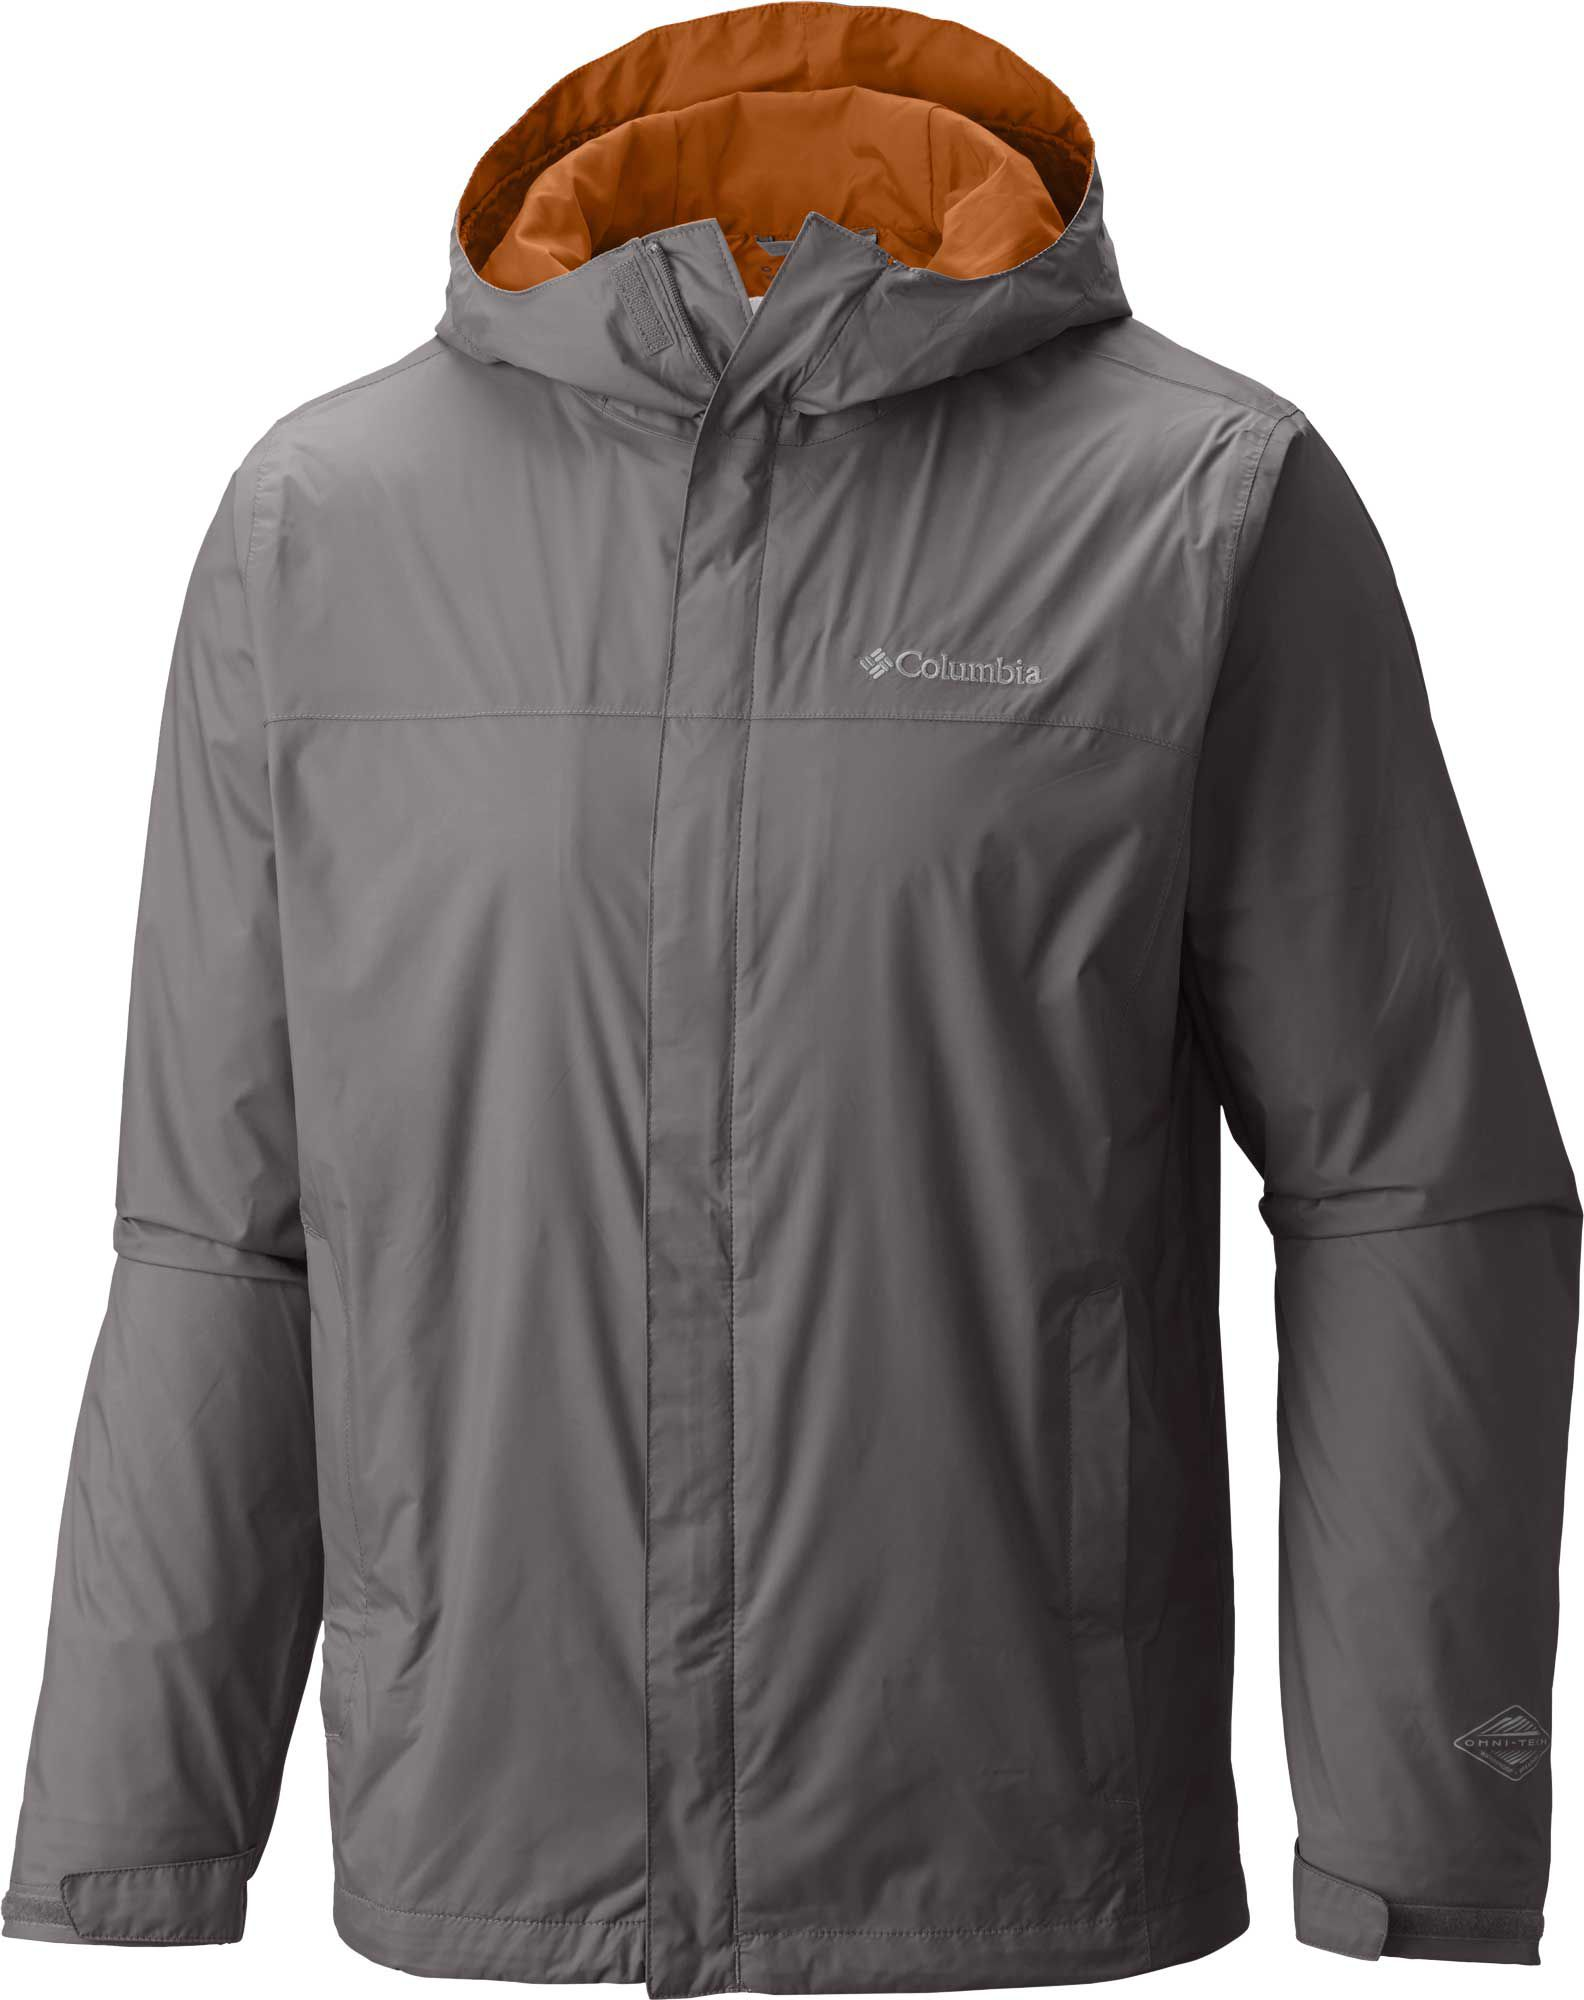 Columbia Men's Watertight II Rain Jacket | DICK'S Sporting Goods